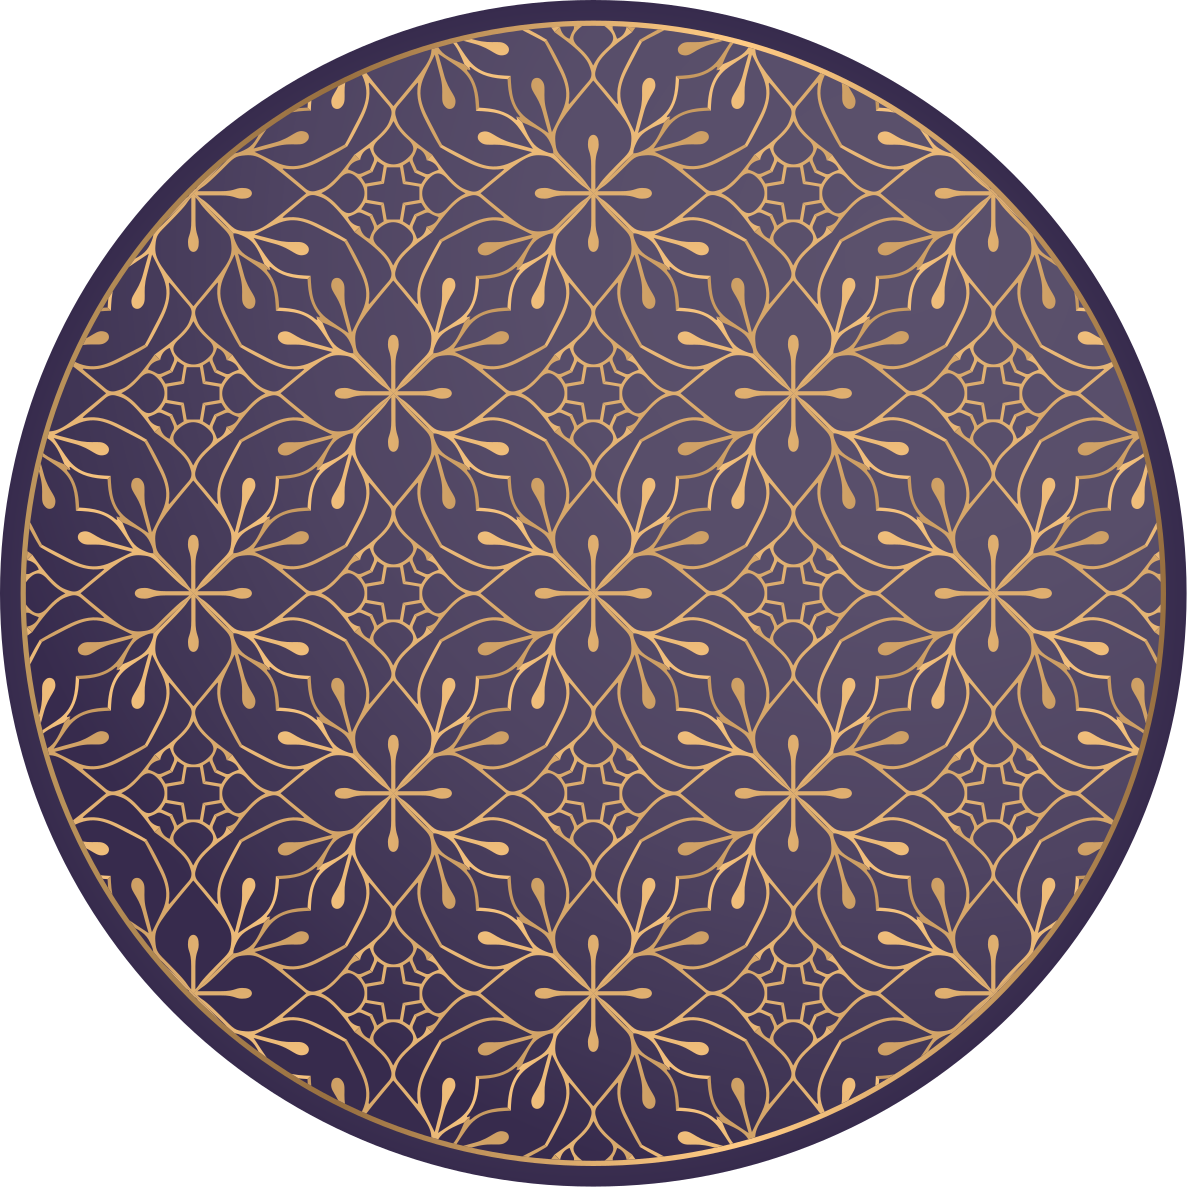 TenStickers. Mandala Elegant Vintage mandala mat. Vinyl rug with retro pattern. The patern presents dark blue ornaments and you can personalzie it in any size. Check it out!